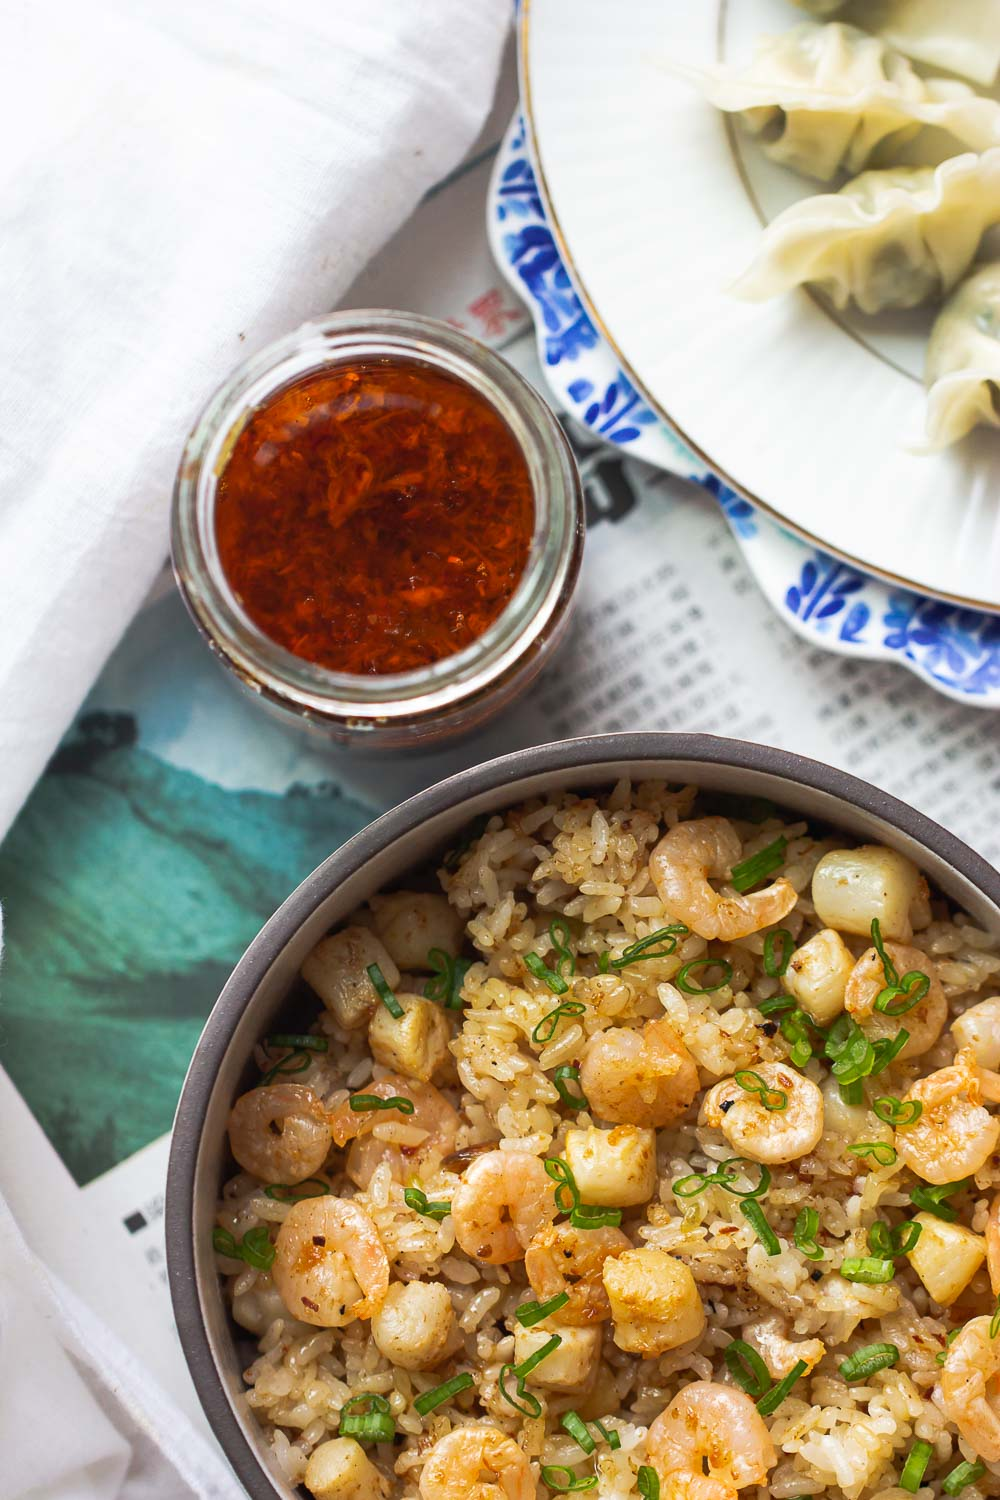 Homemade fried rice is simple to make and healthier than takeout. This Scallop Fried Rice is easy, authentic, and a crowd-pleaser every time. Add this to your Chinese Lunar New Year menu and may this dish usher in happiness and good fortune for you this new year!